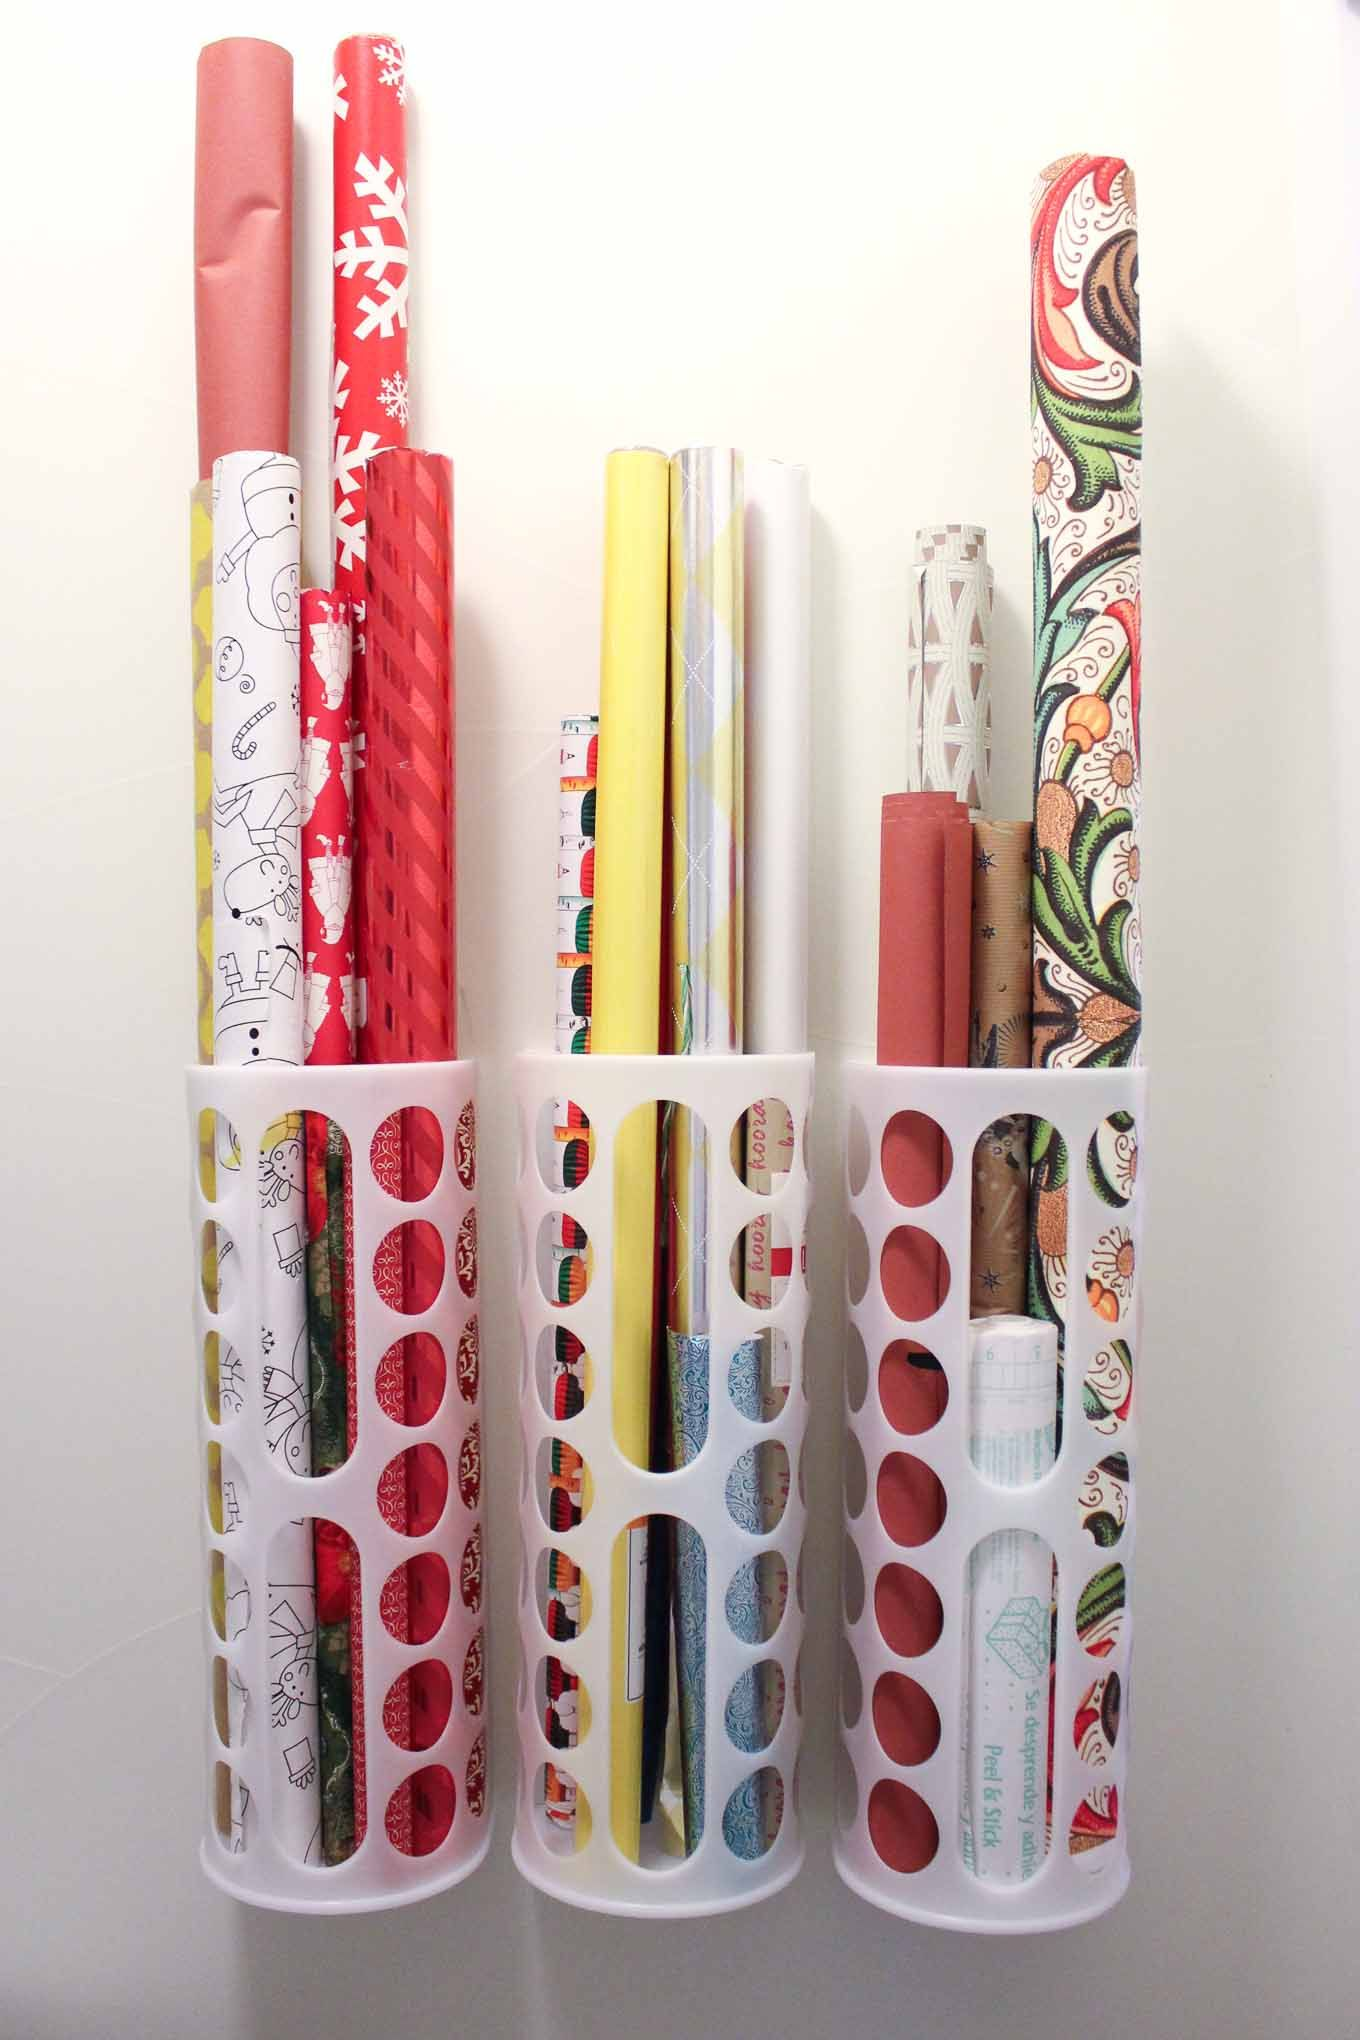 Diy Vertical Wrapping Paper Storage Idea Ikea Hack Diy Wrapping Paper Storage Craft Paper Storage Diy Wrapping Paper